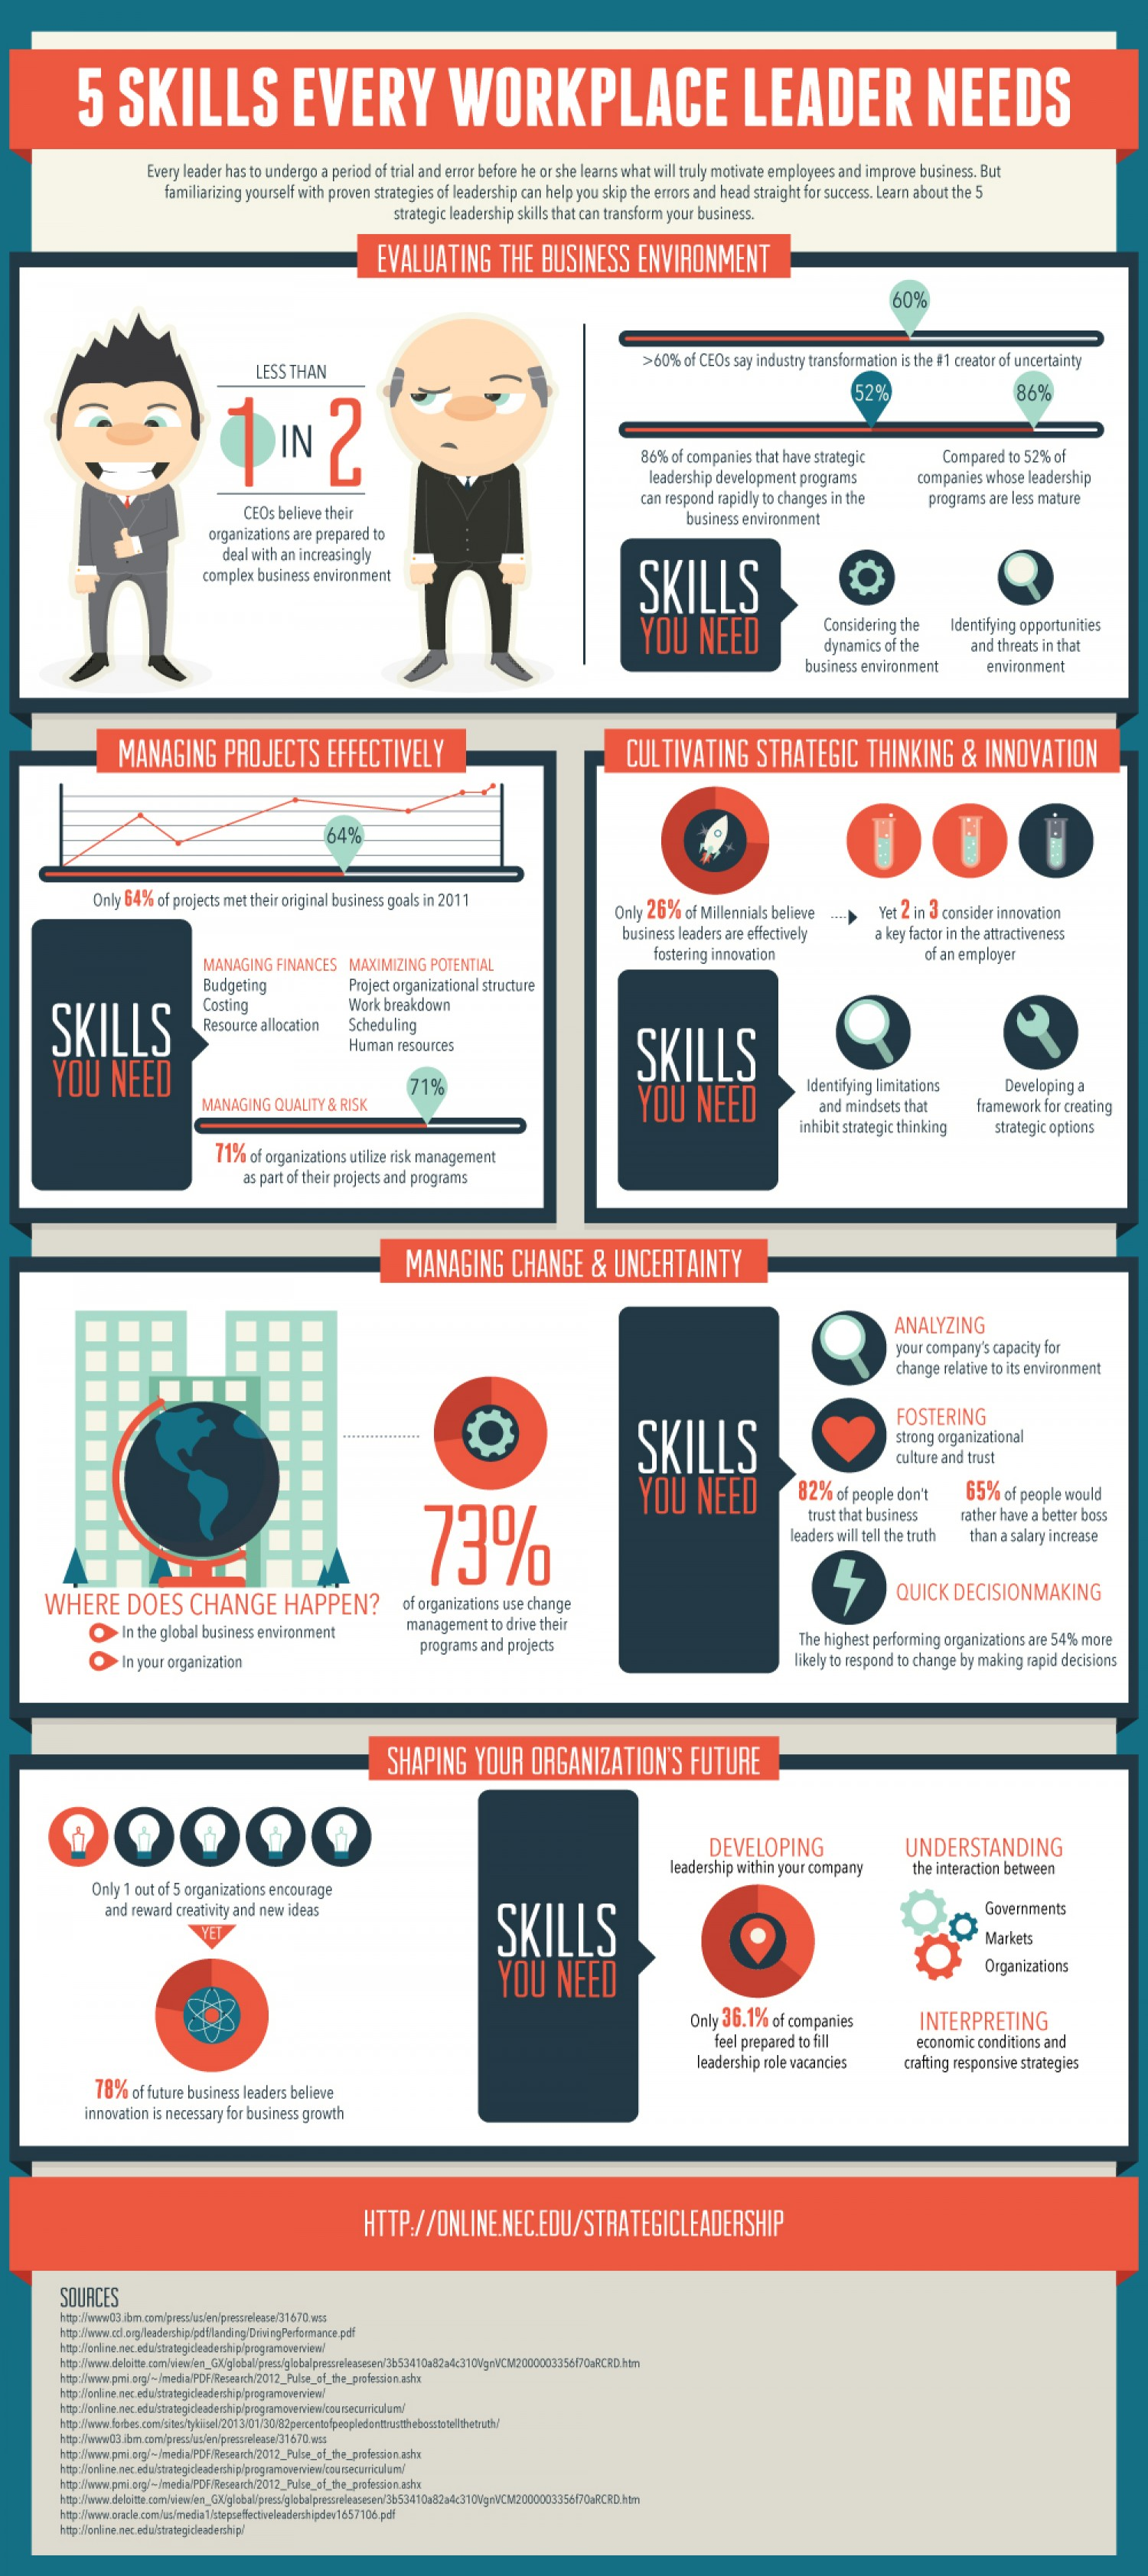 8. 5 skills every workplace leader needs